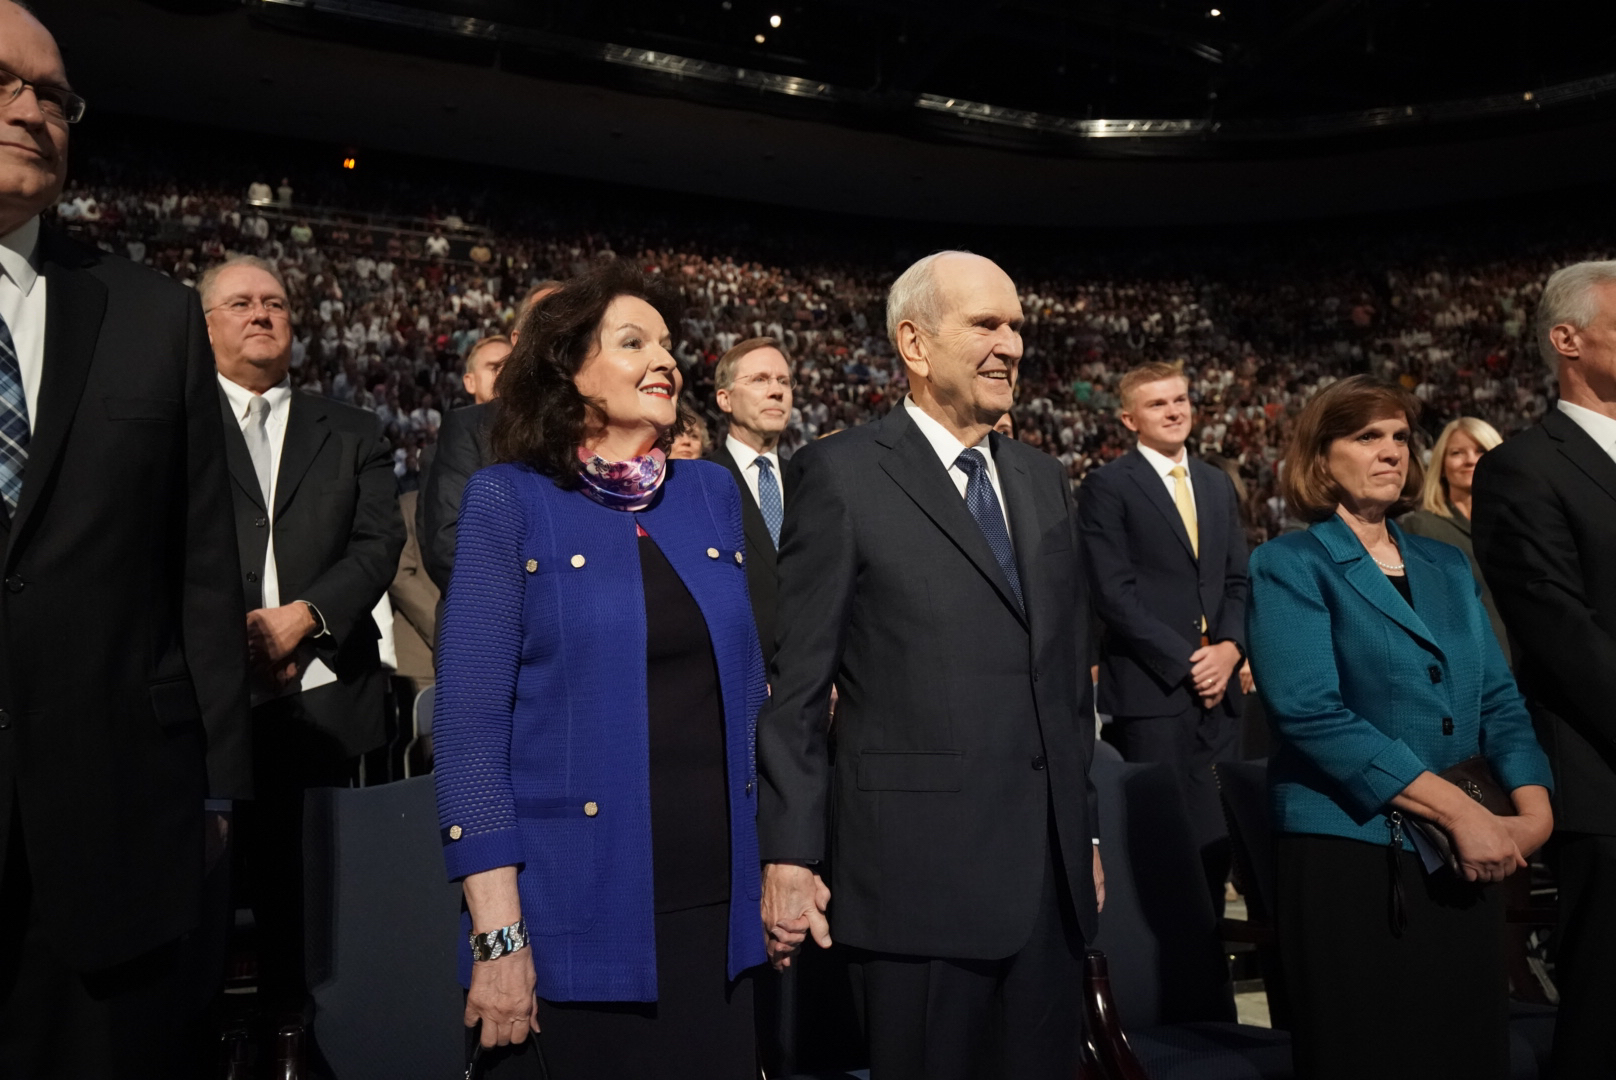 President Russell M. Nelson of The Church of Jesus Christ of Latter-day Saints and his wife, Sister Wendy Nelson, stand before speaking at a devotional at Brigham Young University in Provo on Tuesday, Sept. 17, 2019.